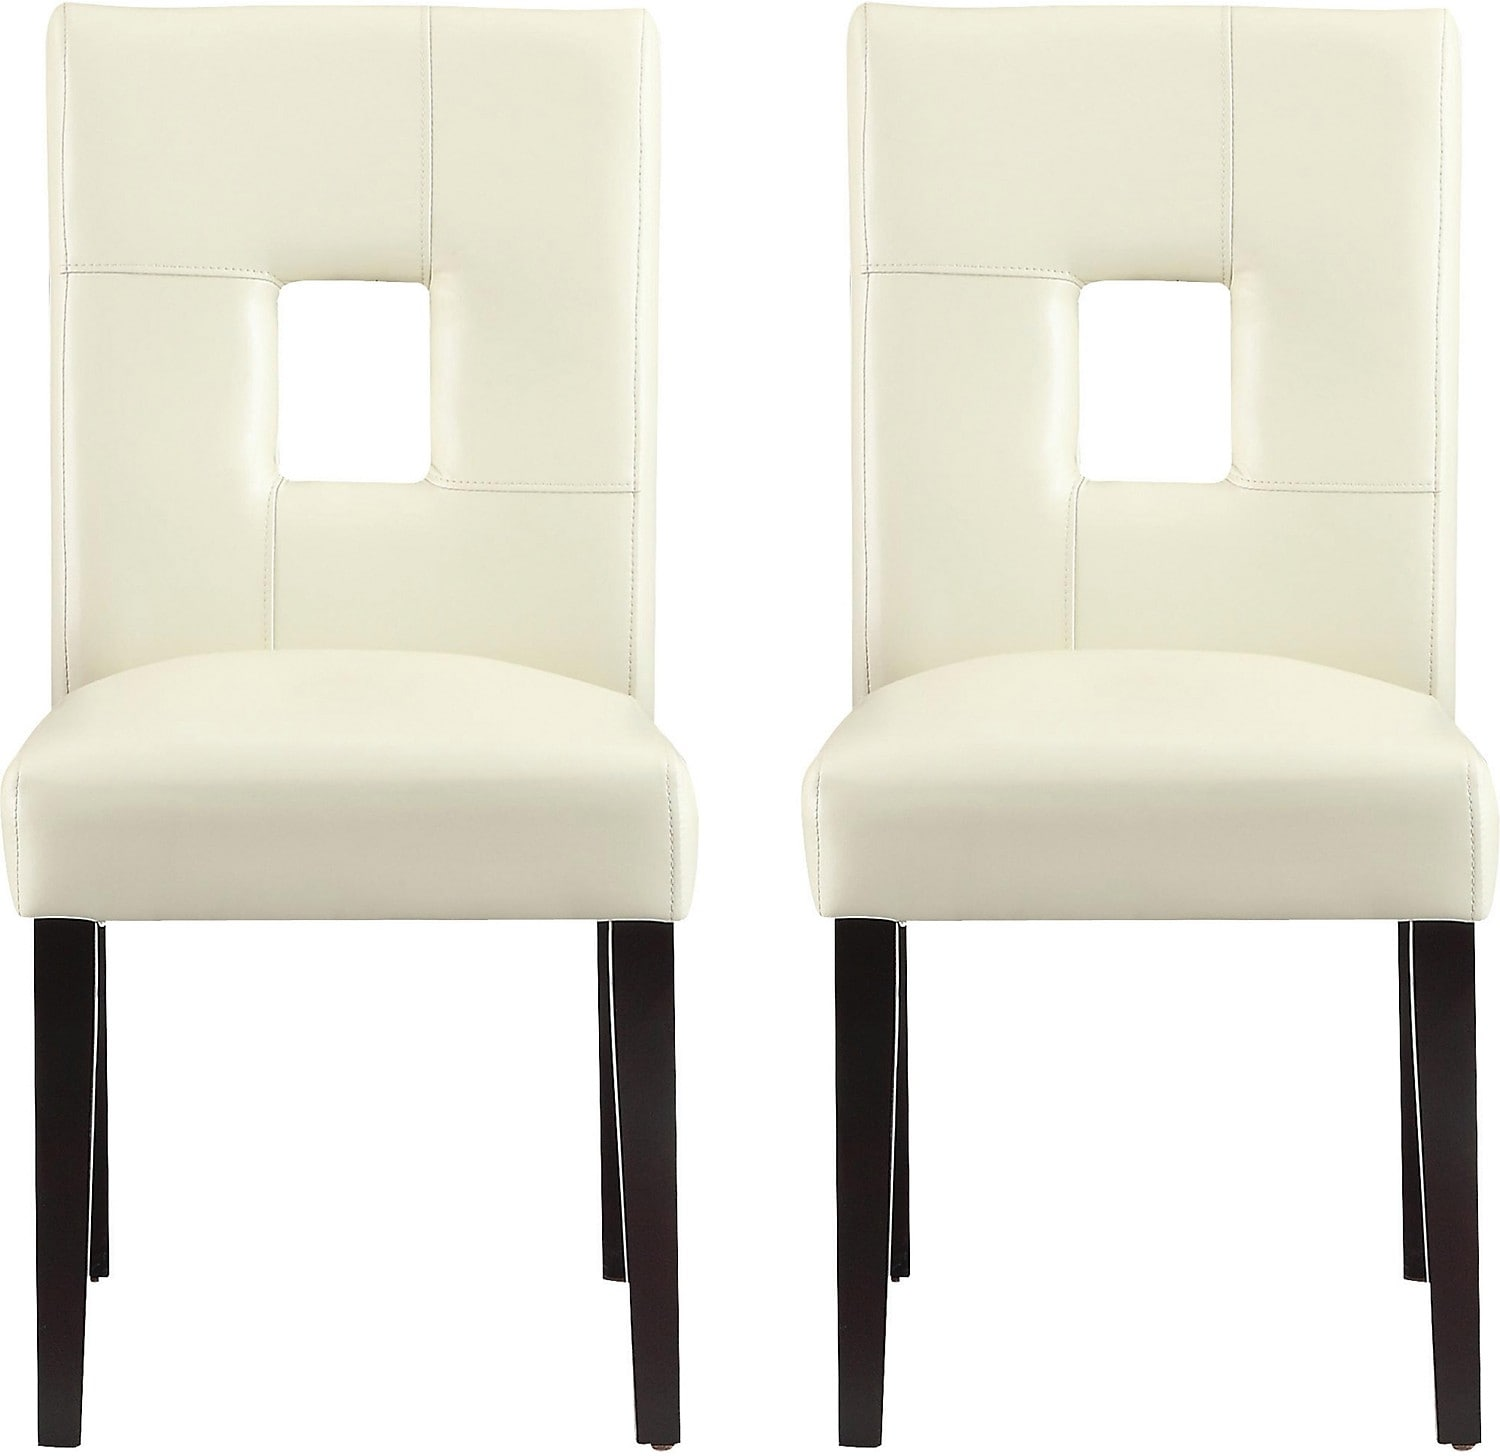 McKenna 2-Piece Dining Chairs - Ivory